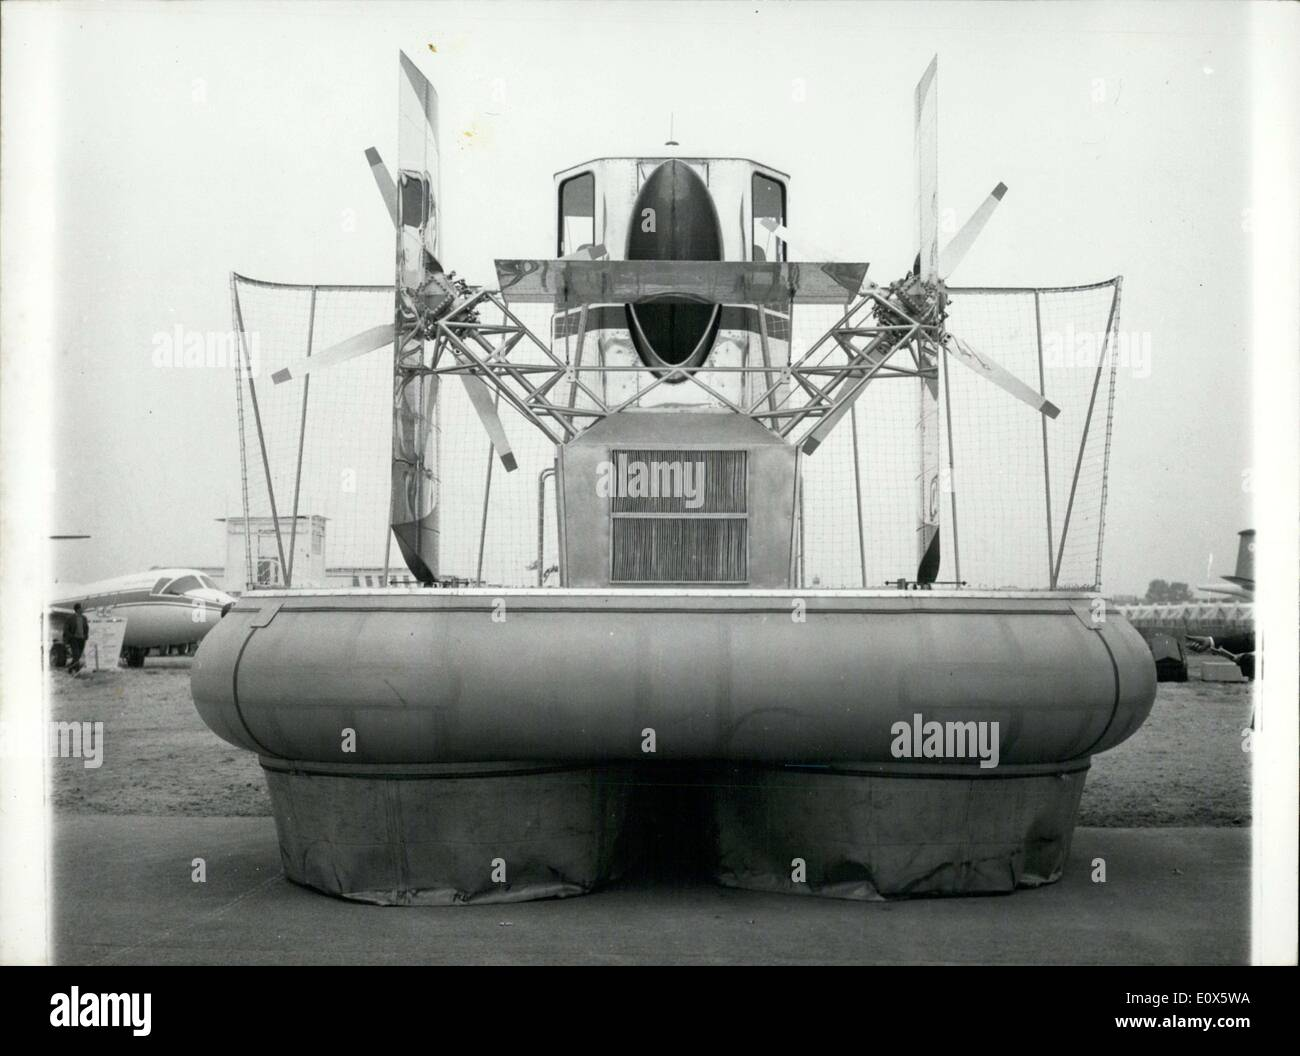 Jun. 11, 1965 - 26th Aeronautic and Space Expo Features Hovercraft - Stock Image